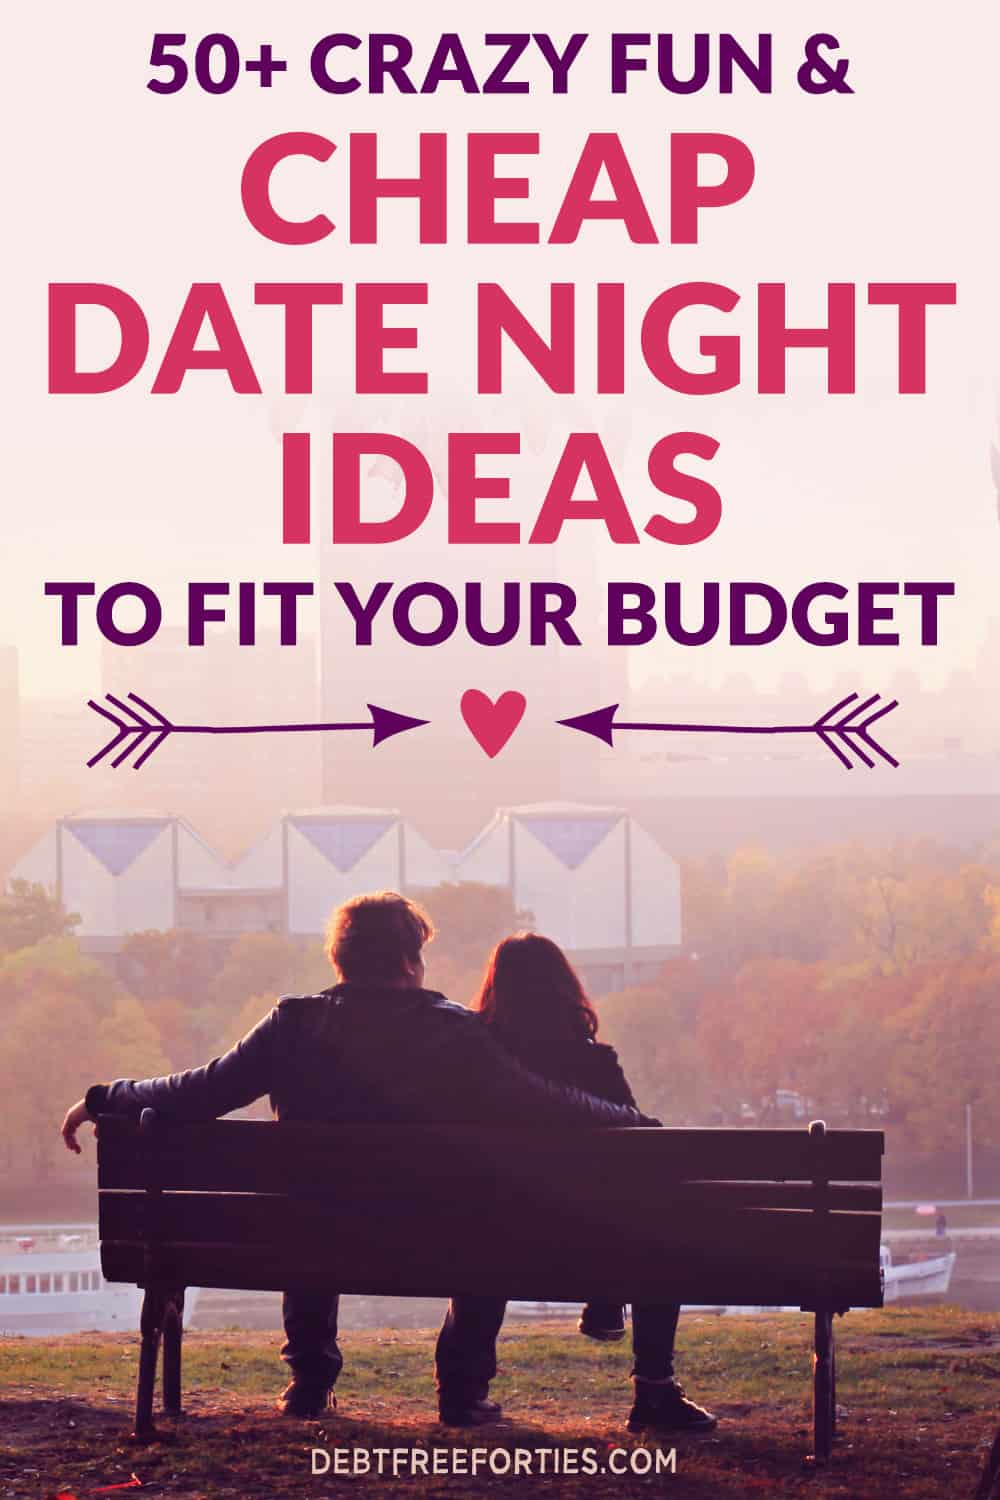 While you should be budgeting for date nights, they don't have to cost an arm and a leg. And by choosing cheap date night ideas over expensive ones, you will be able to have date nights more often. Here are 50+ crazy, fun and cheap date night ideas to fit into your budget. #frugalliving #cheapdateideas #datenightideas #budgeting